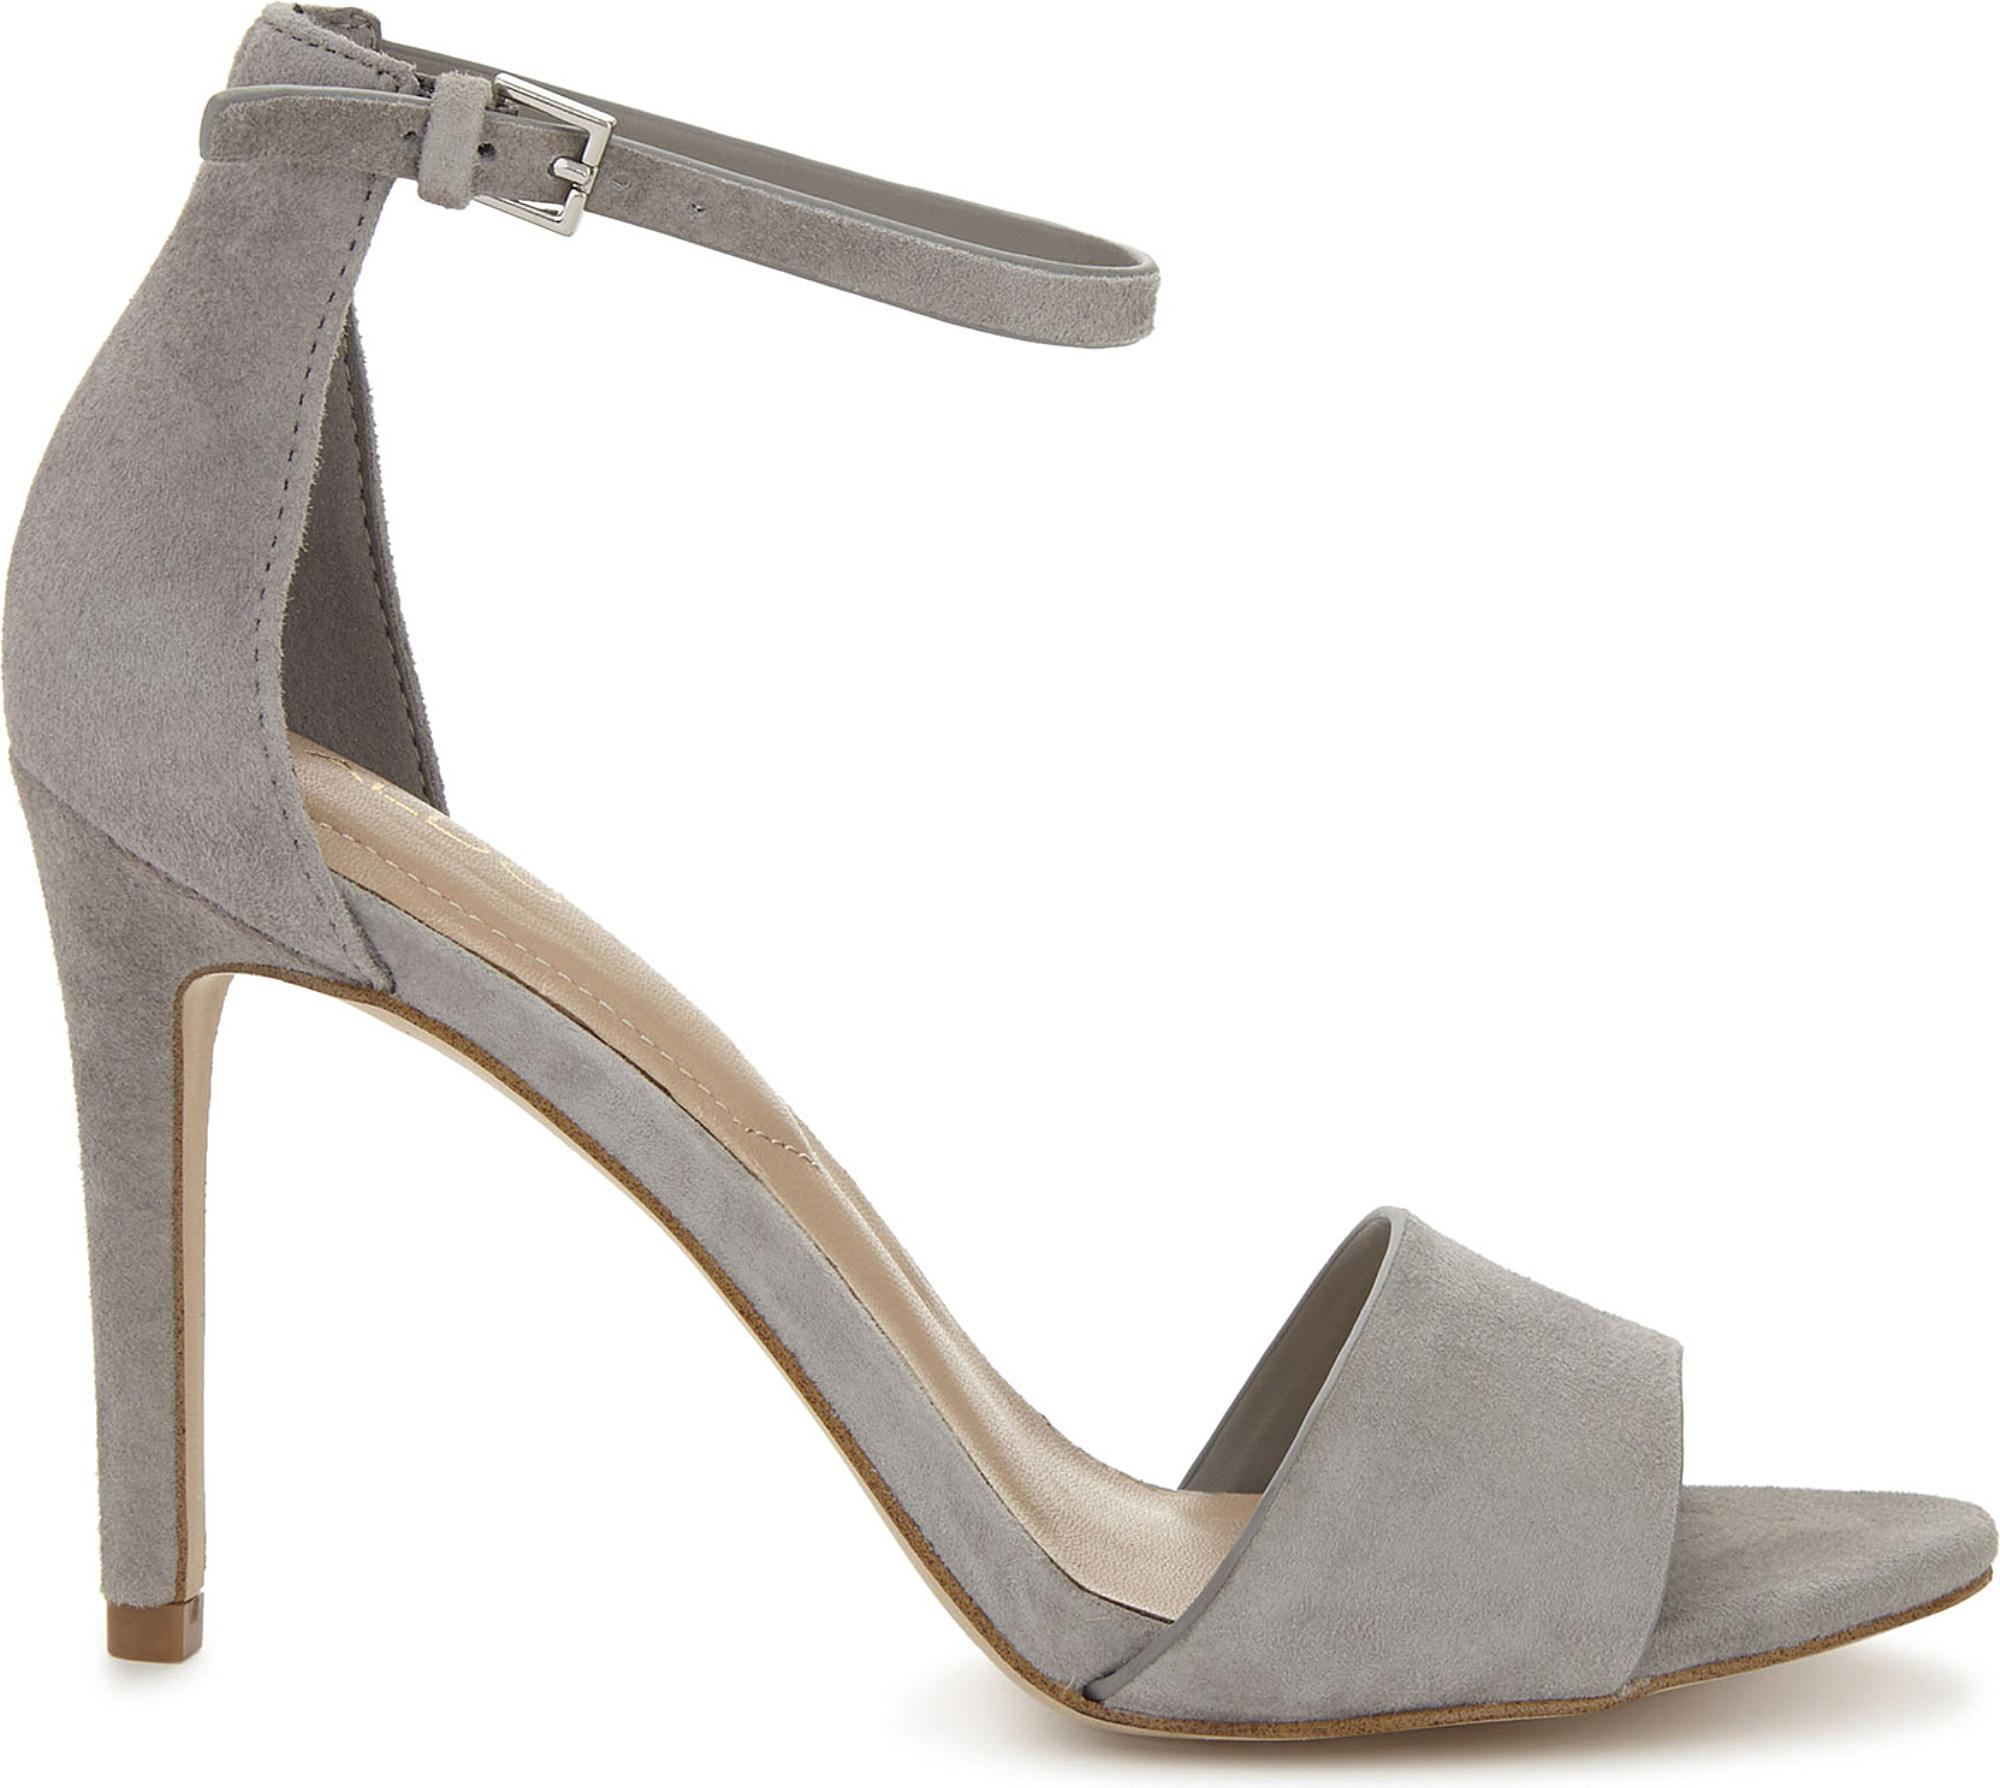 f10dcc47d58 ALDO Fiolla Suede Heeled Sandals in Blue - Lyst